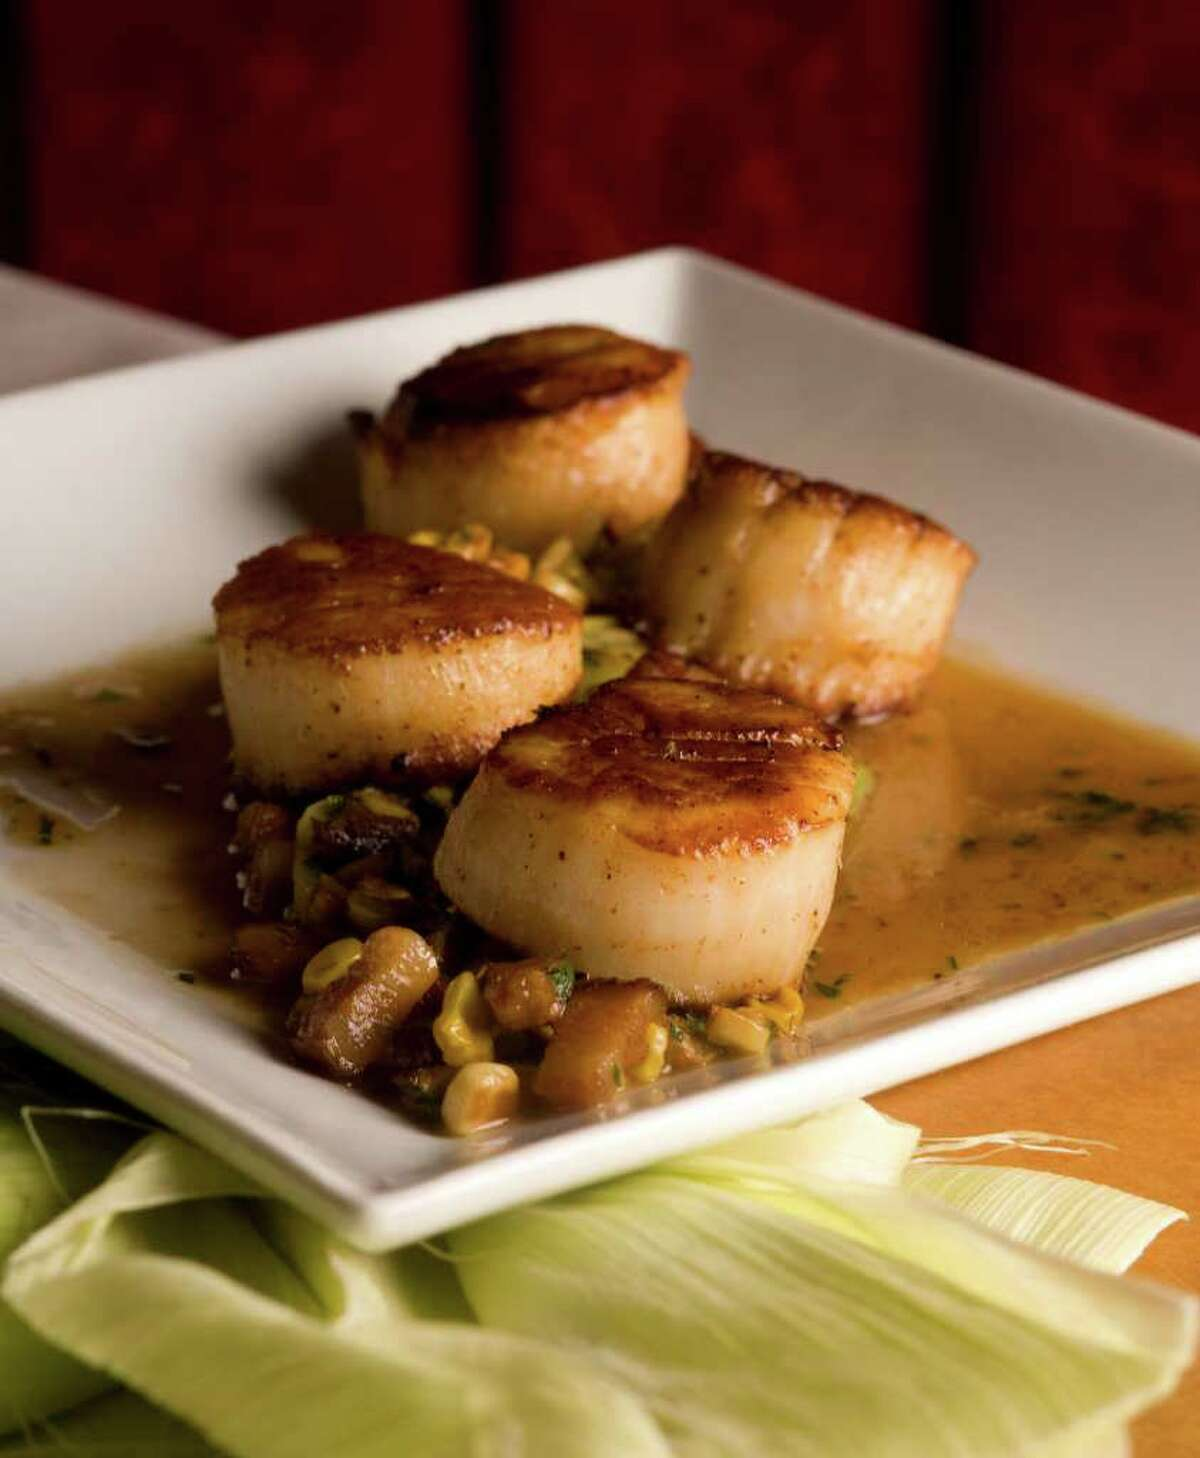 Seared scallops is one of the menu items at Coco Chocolate Lounge & Bistro.